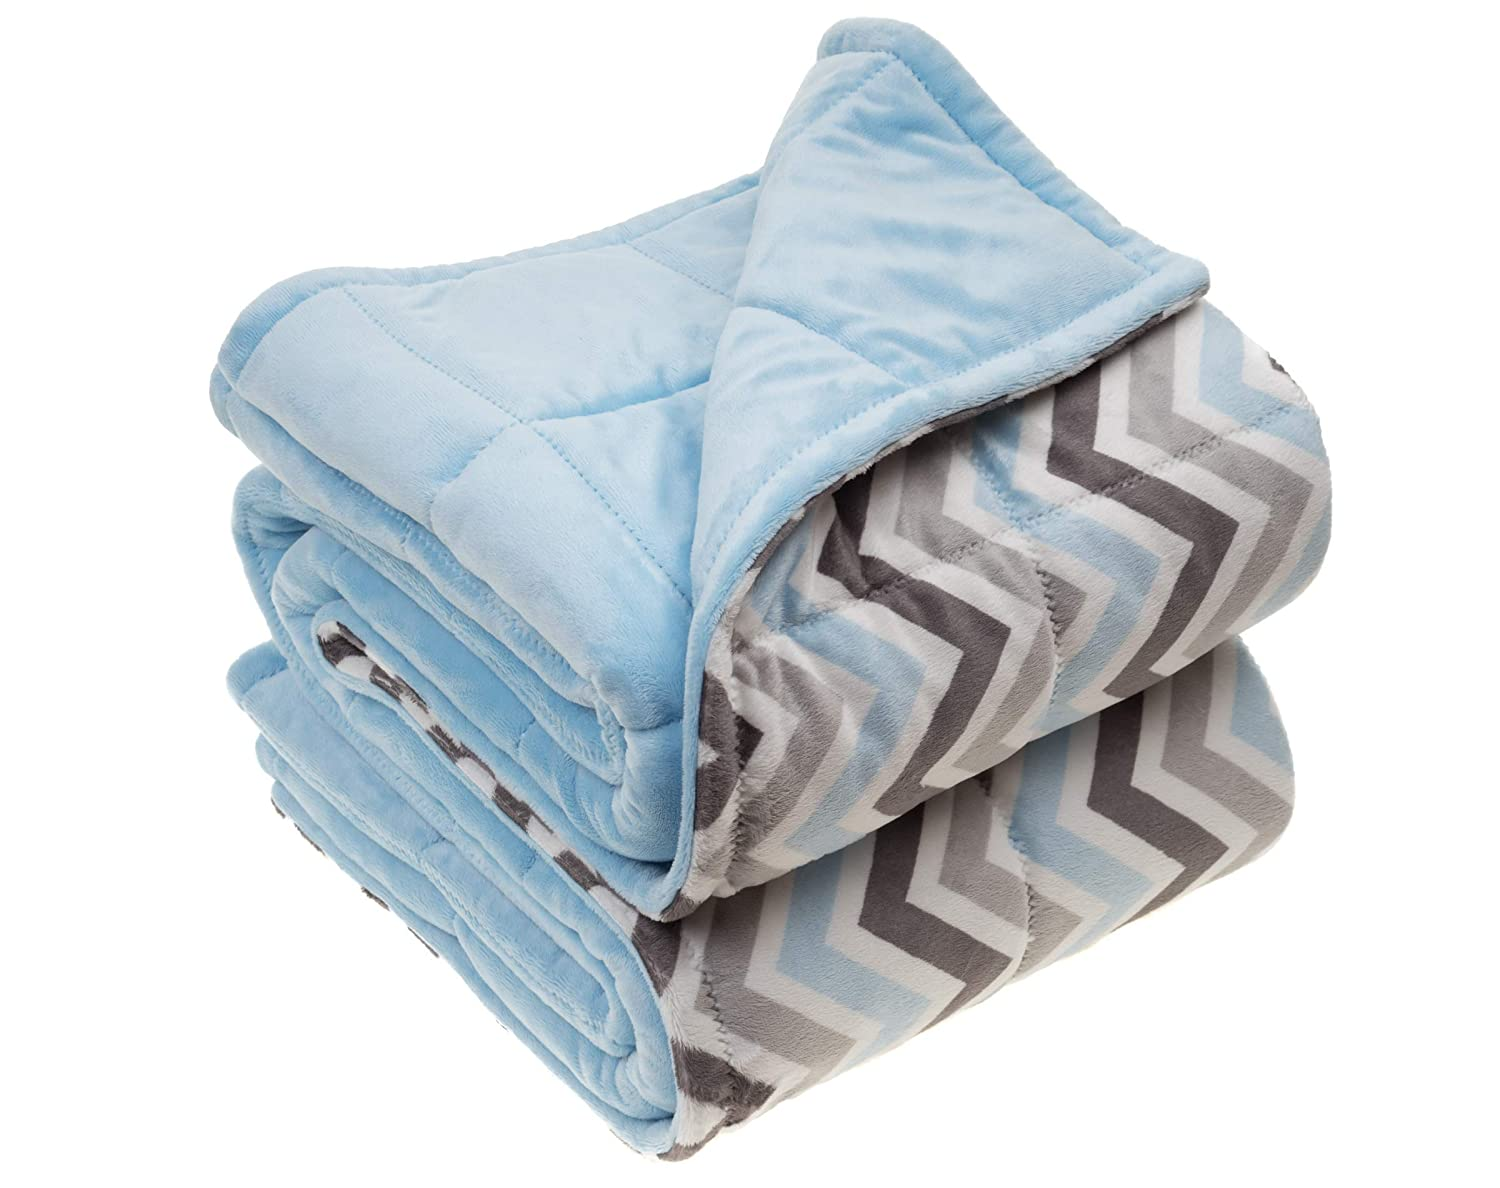 XL 54x68 inches XXL 54x80 inches L 42x60 inches Luxury Minky Weighted Sensory Blanket for Adults